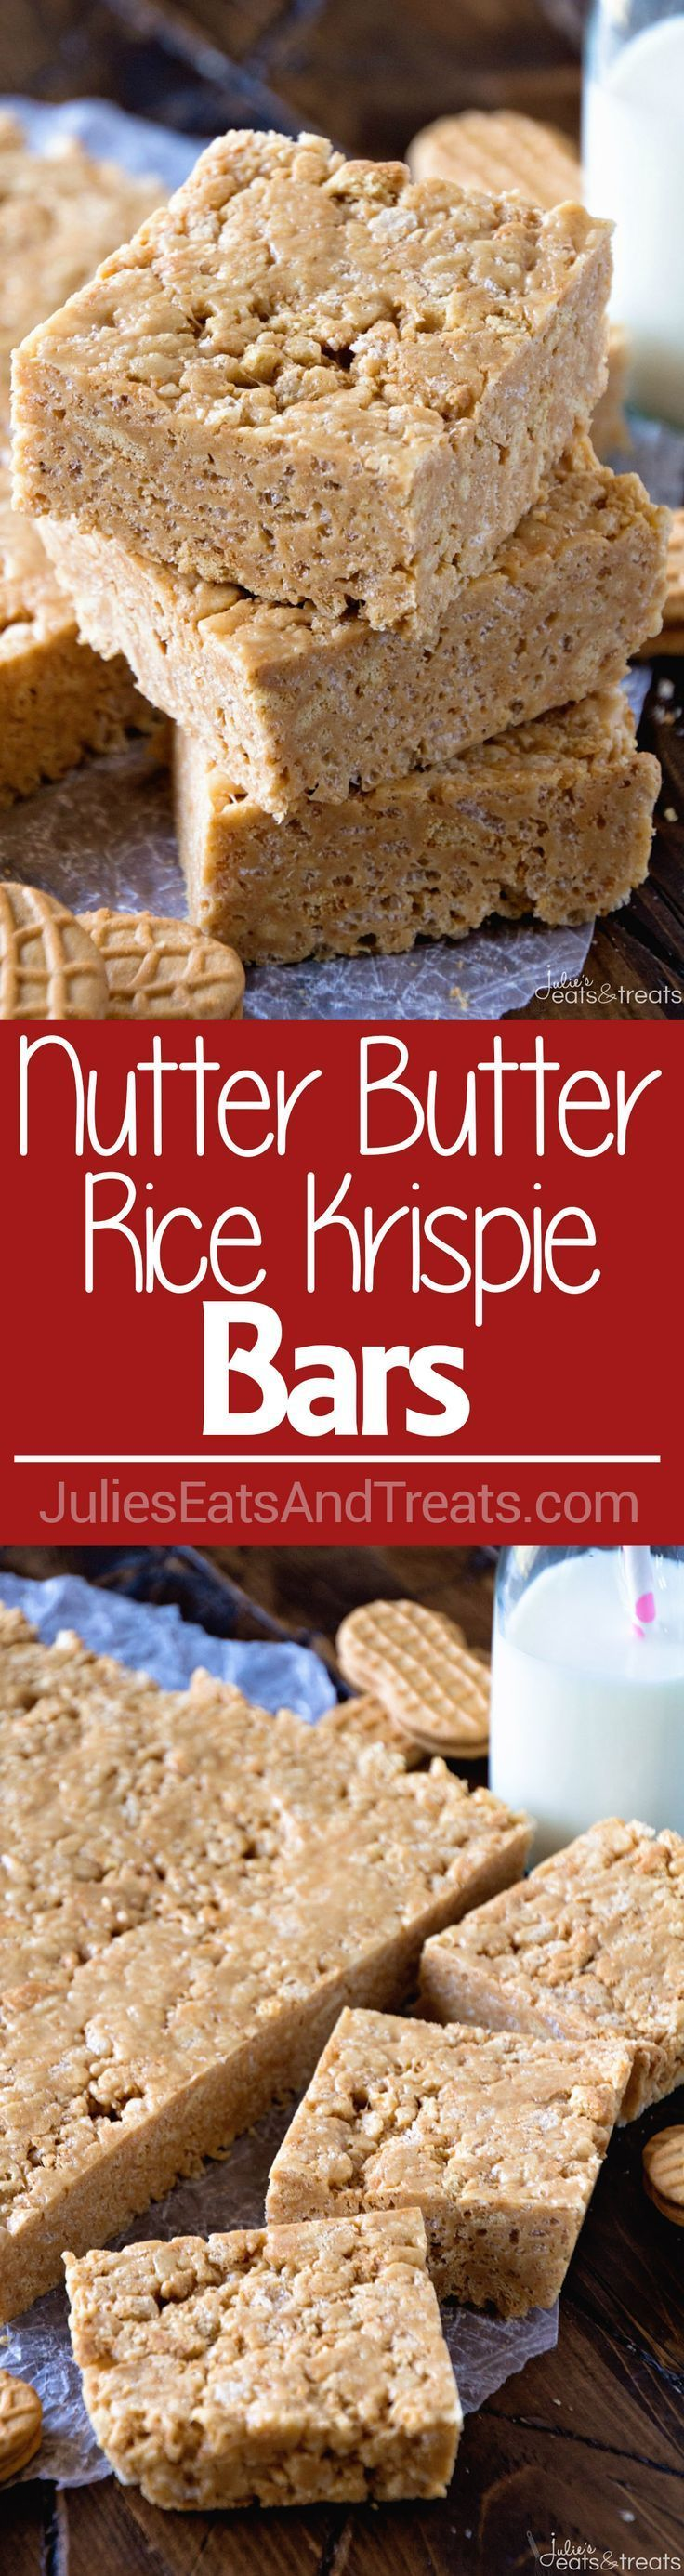 Nutter Butter Rice Krispie Bars Recipe ~ Quick, No Bake Rice Krispies Bars Loaded with Nutter Butter Cookies for the Perfect Peanut Butter Overload!